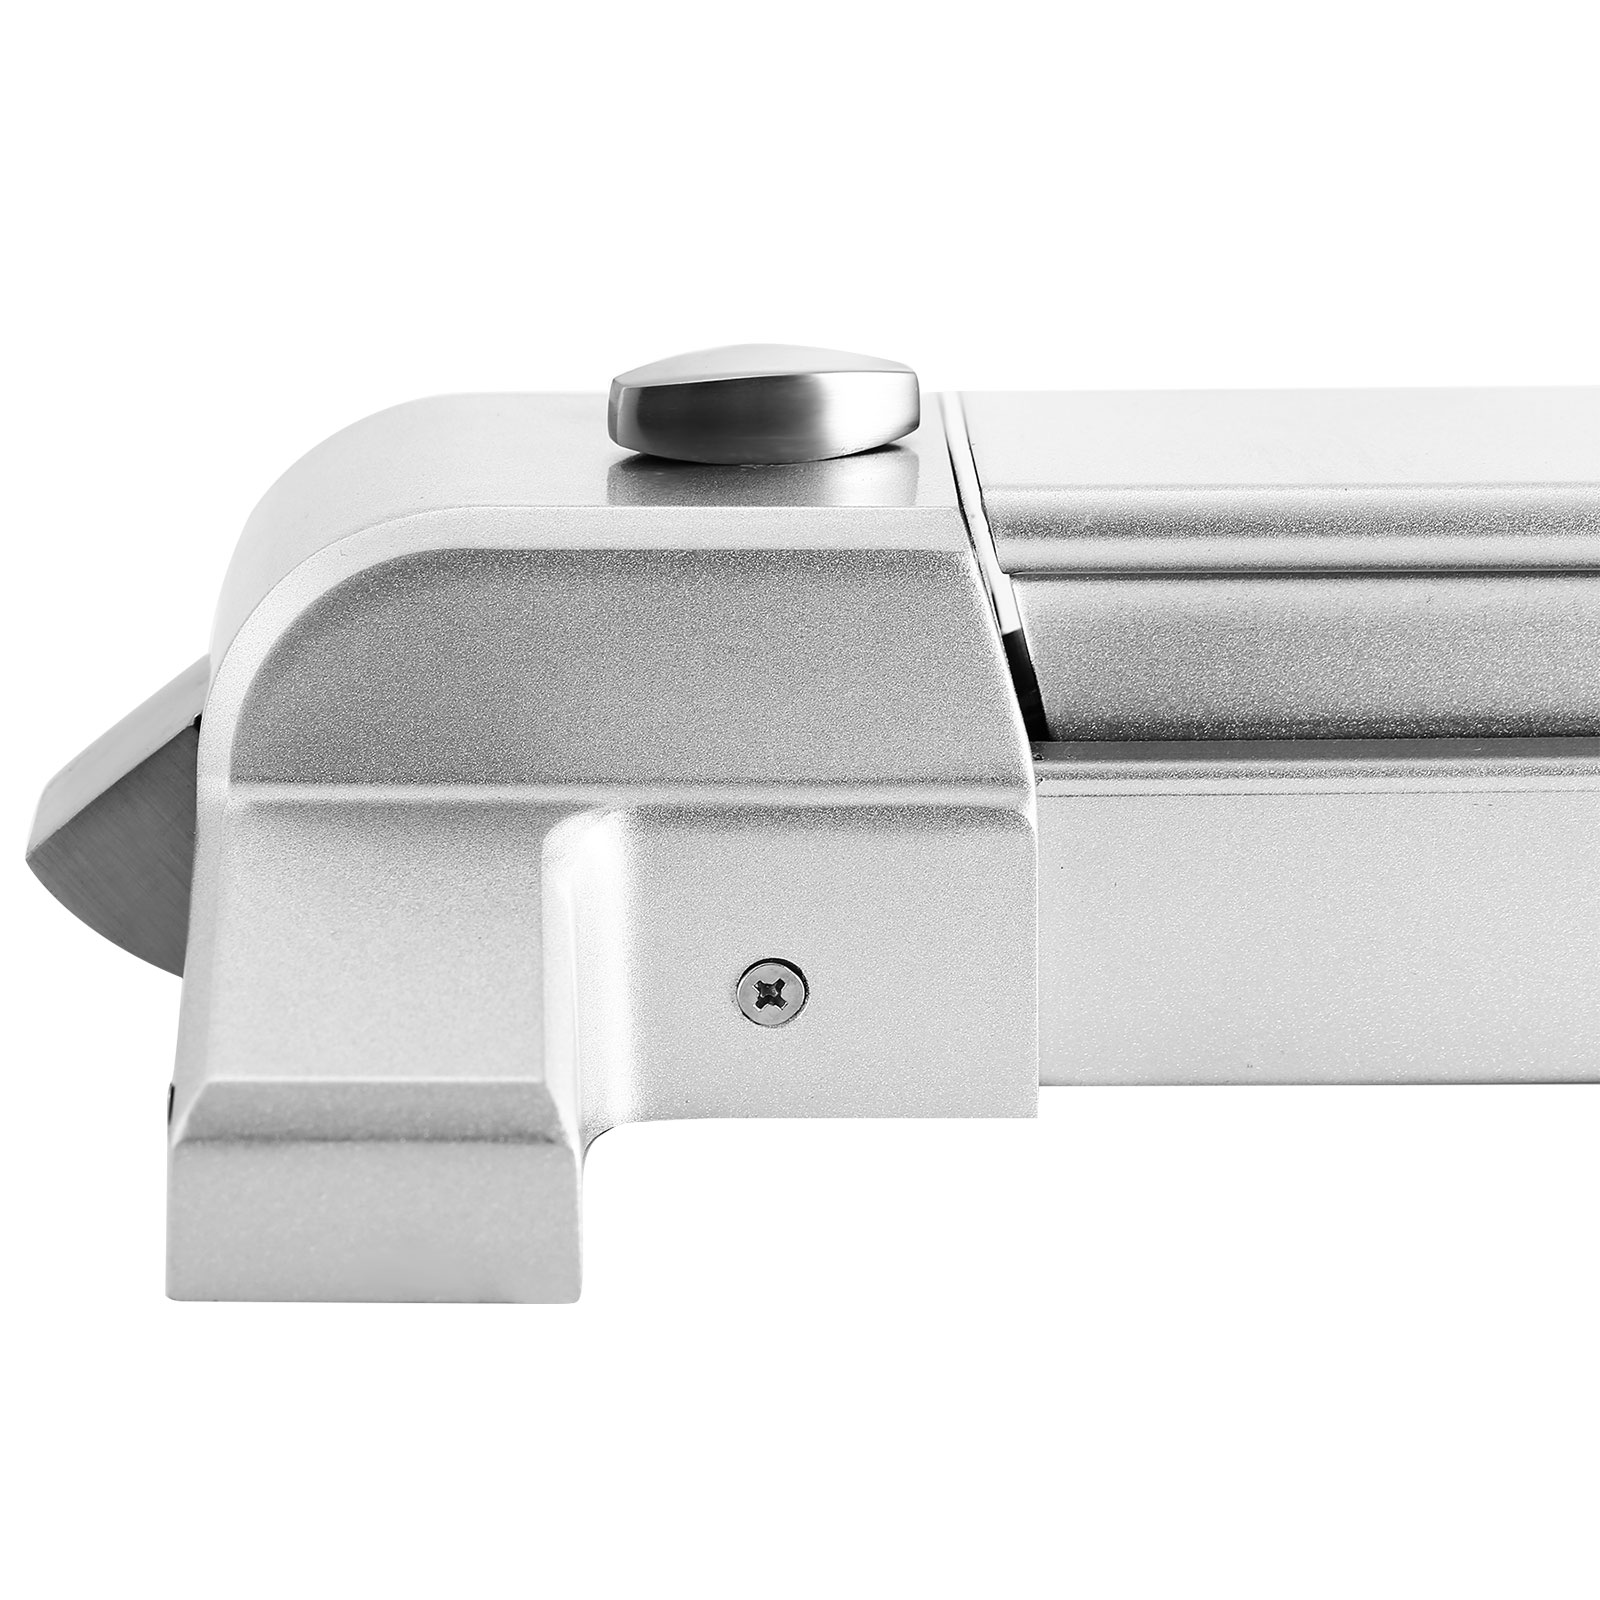 Door Push Bar Panic Exit Device Lock With Handle Emergency